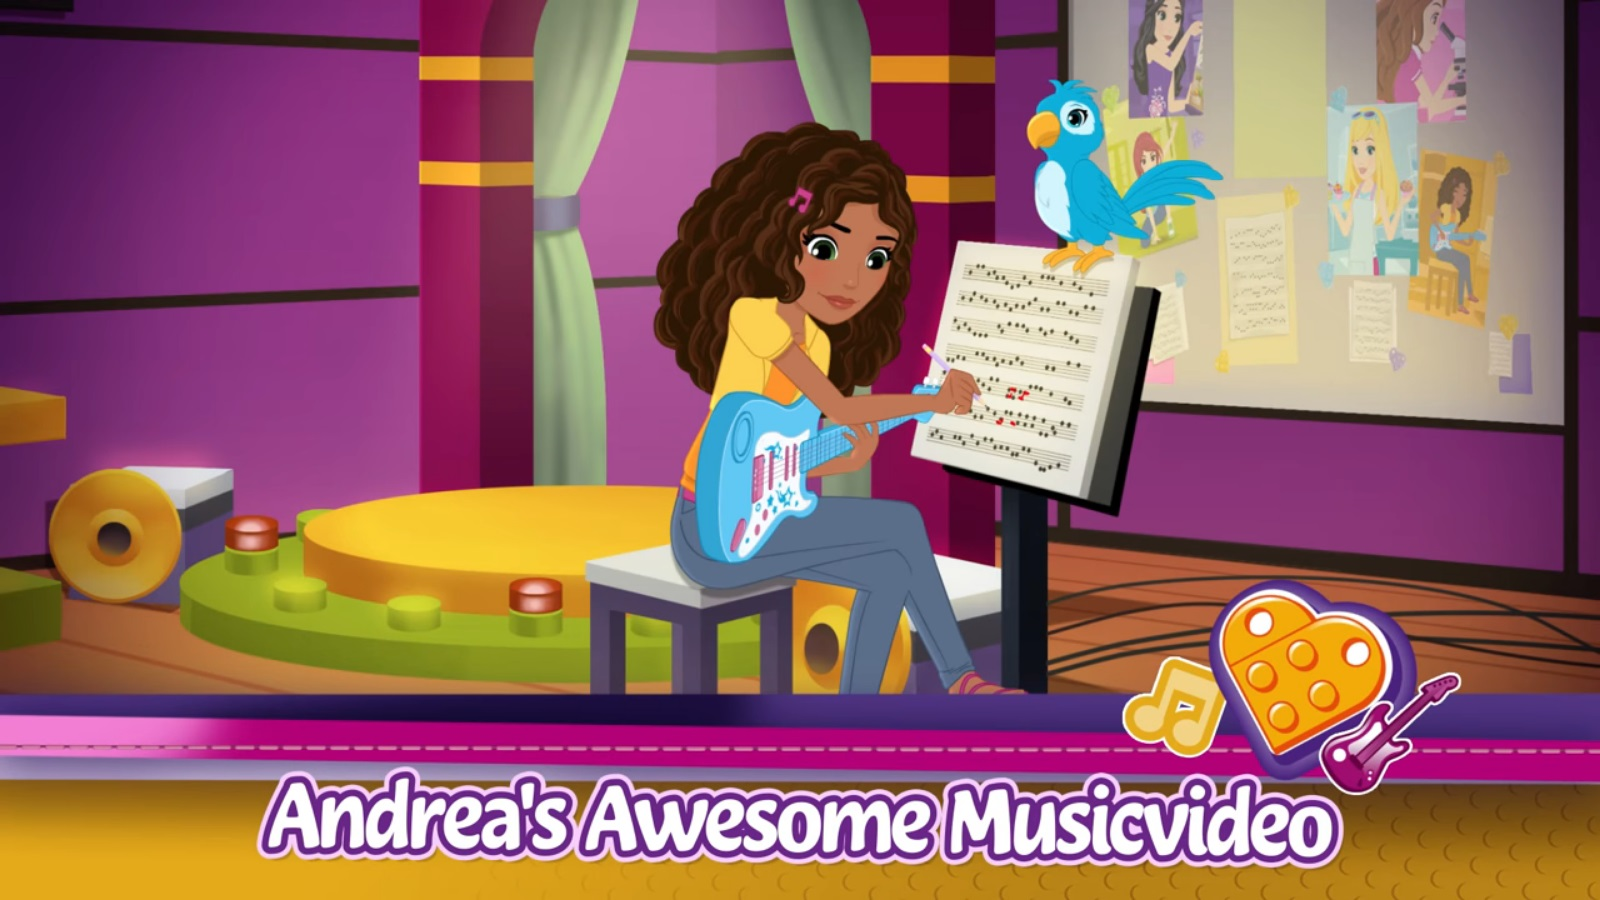 Andreas Friendship Song Lego Friends Wiki Fandom Powered By Wikia